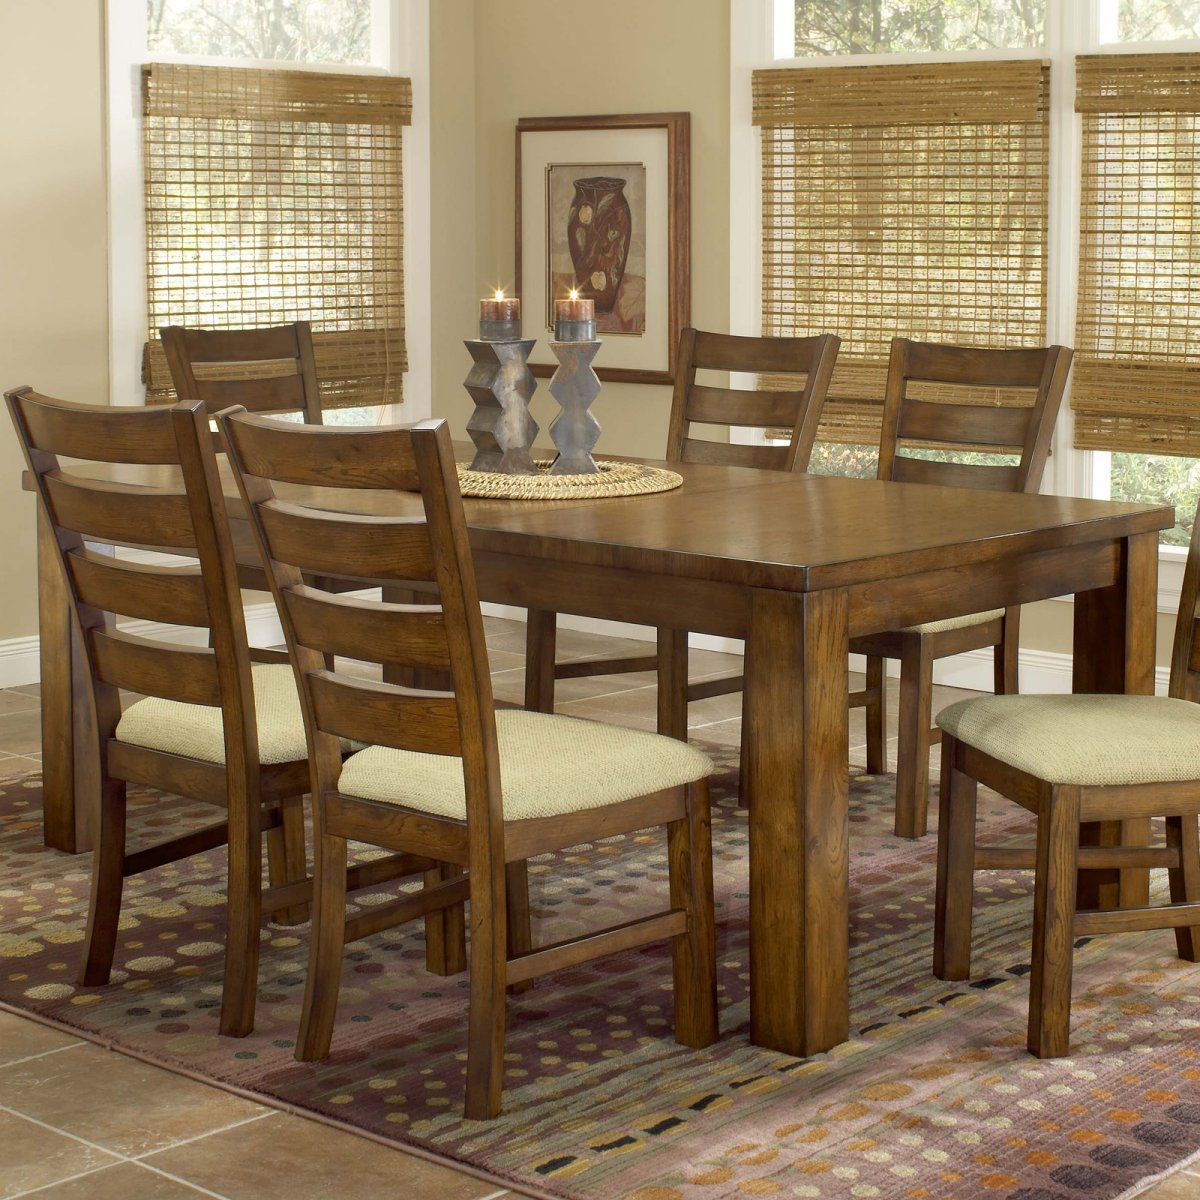 Real wood dining table review homesfeed for Wooden dining room chairs